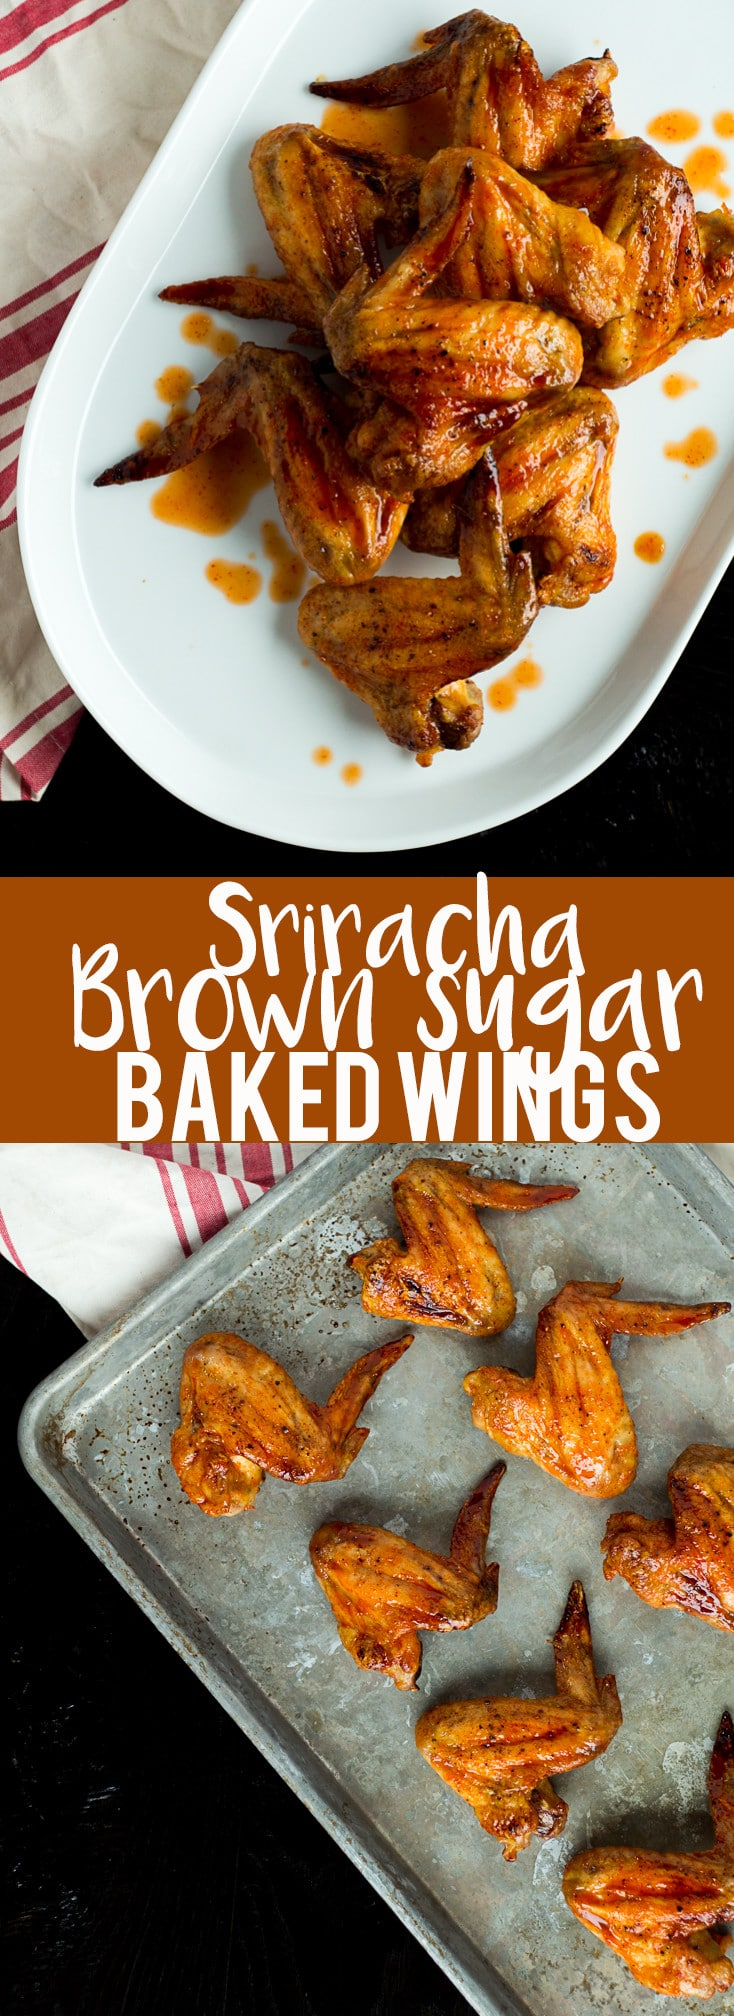 These Sriracha Brown Sugar Baked Wings are a little sweet, a little spicy and a little tangy. They get amazingly crispy in the oven, then finish with the sriracha brown sugar glaze that is totally mouthwatering and addictive!